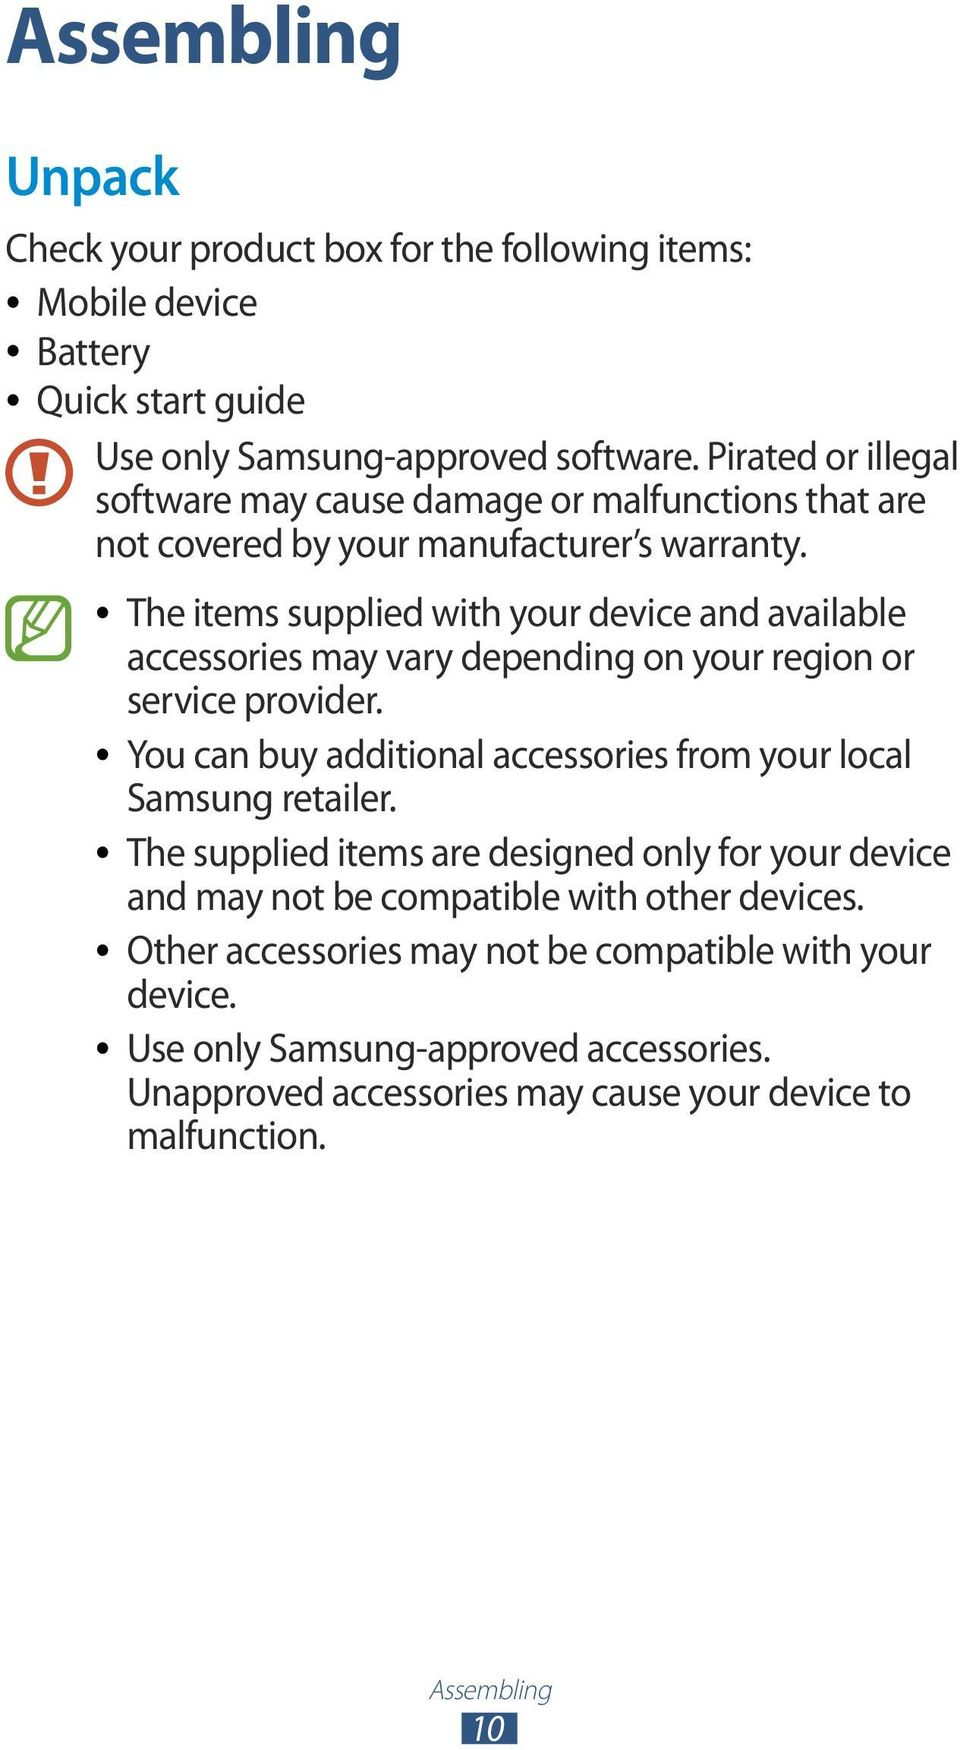 The items supplied with your device and available accessories may vary depending on your region or service provider.